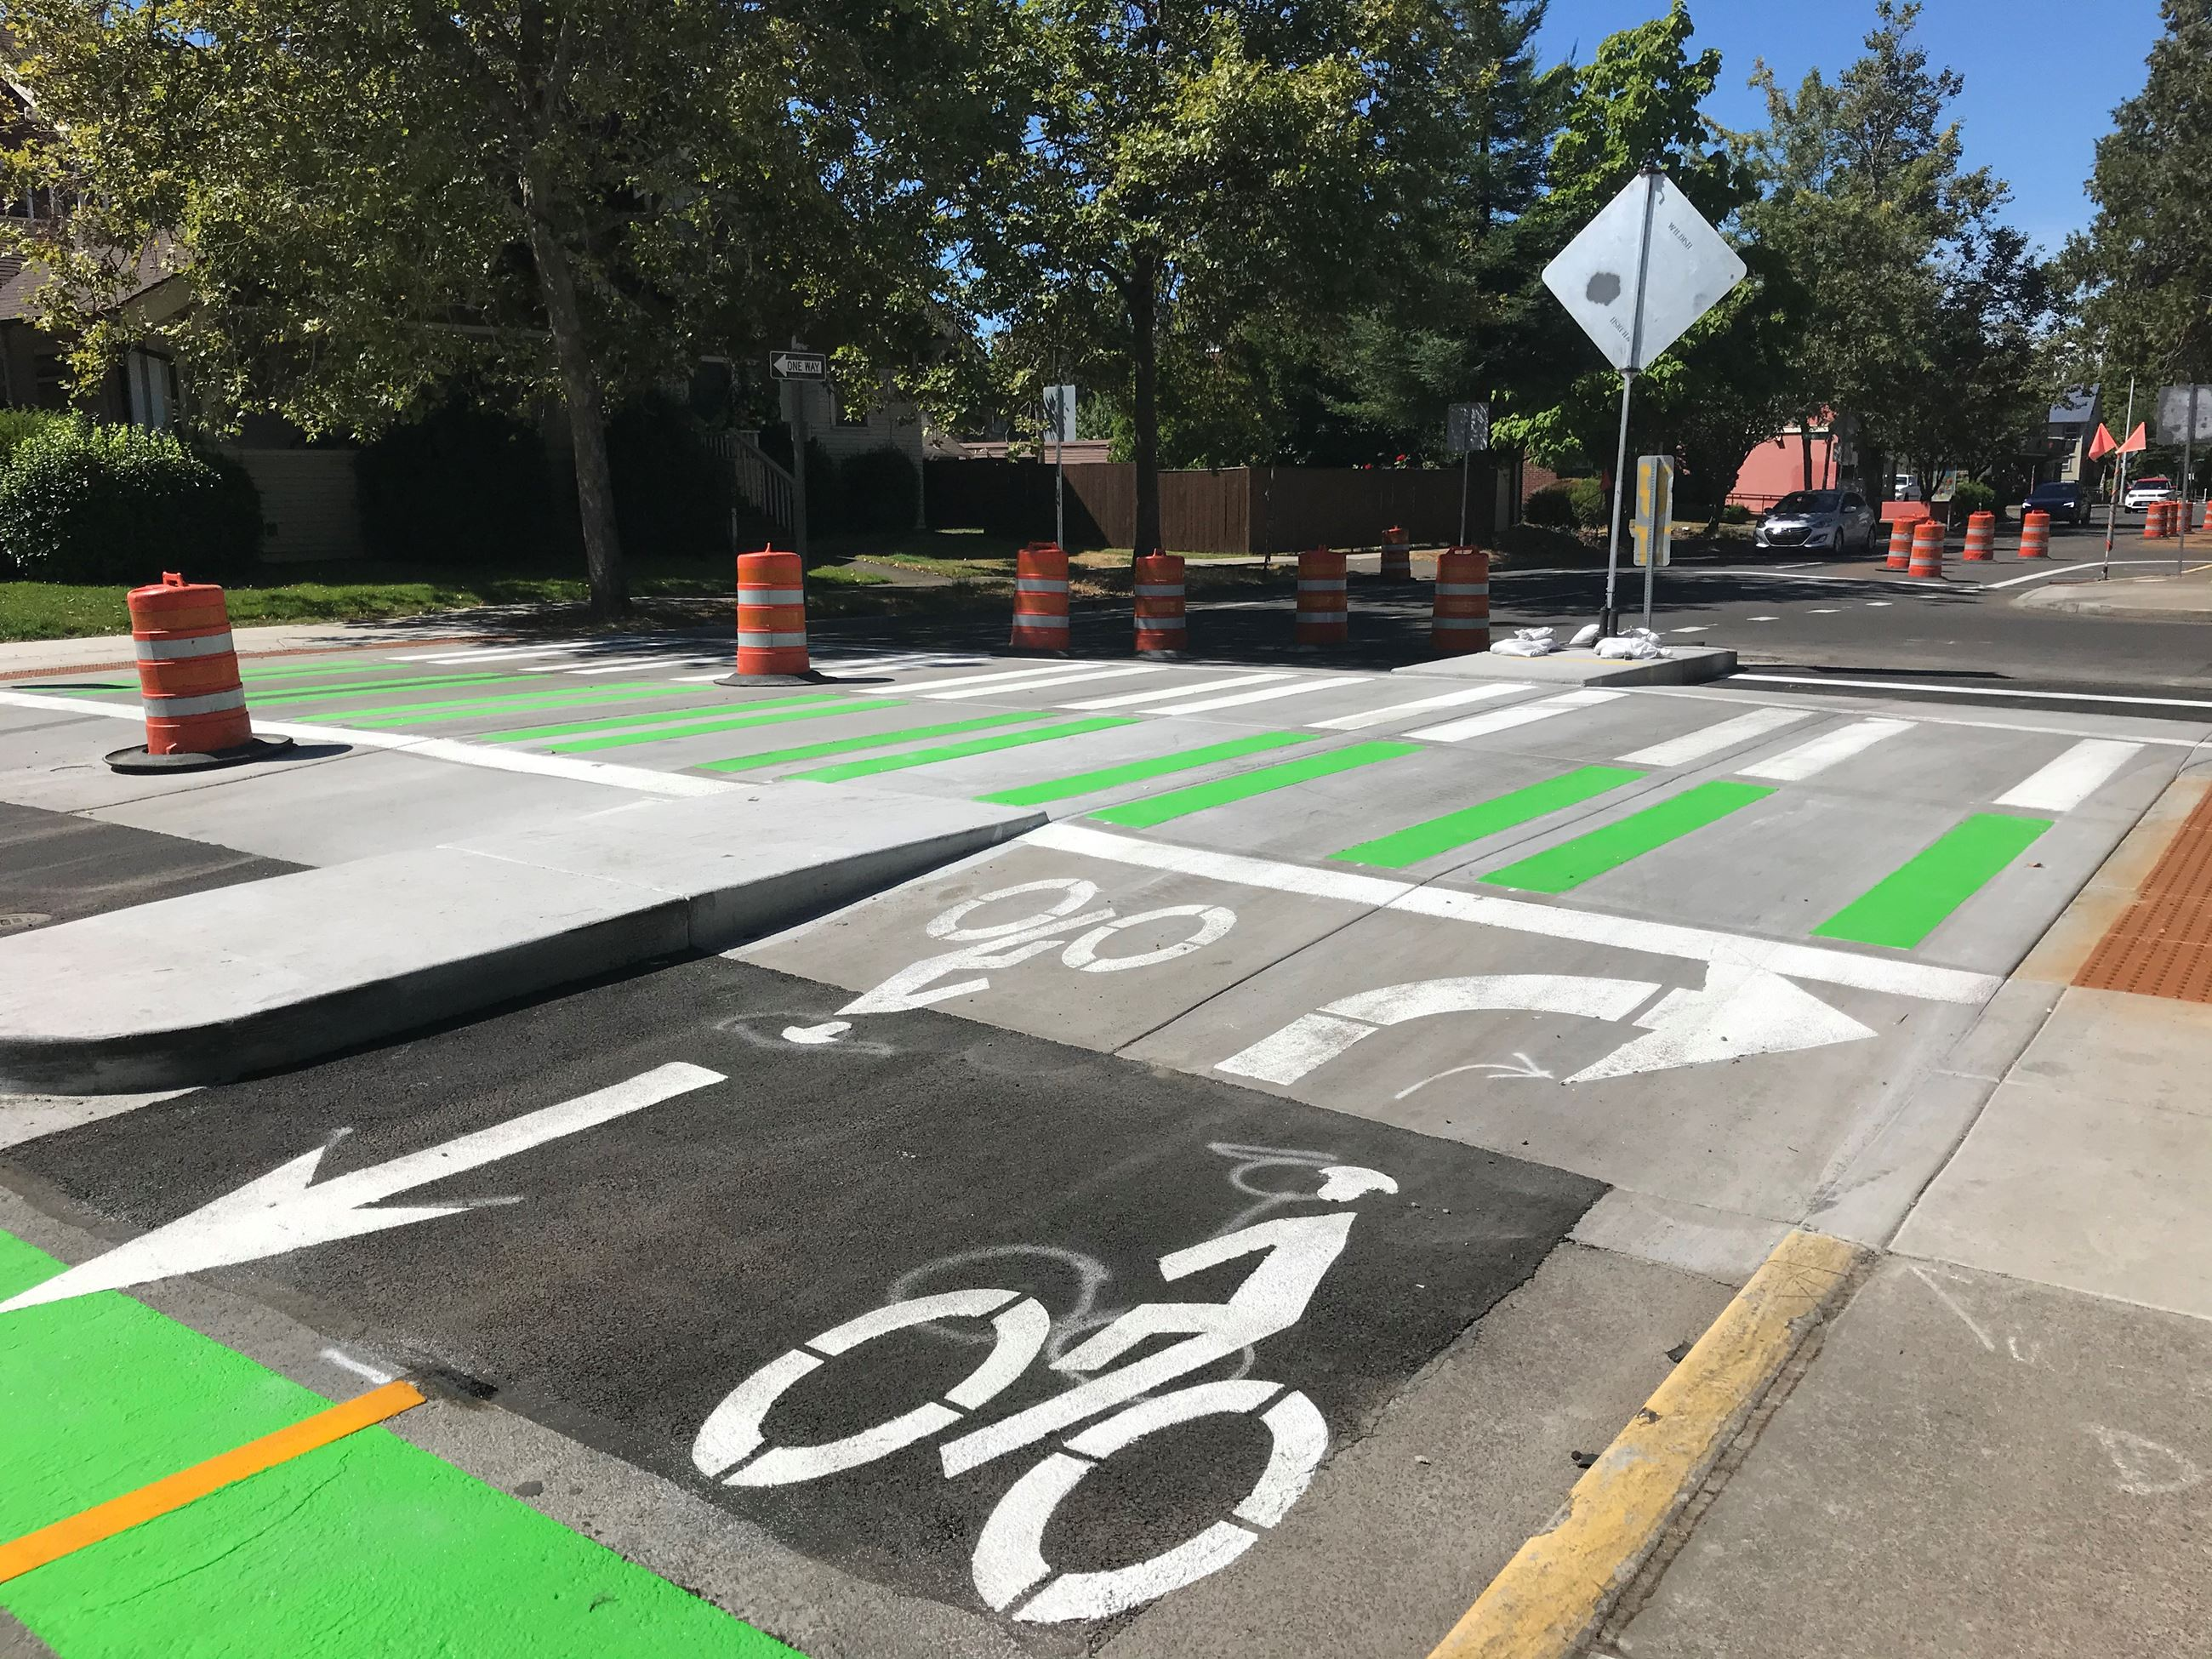 13th Avenue Bikeway at 13th and Lawrence. Green painted two-way protected bike lanes.